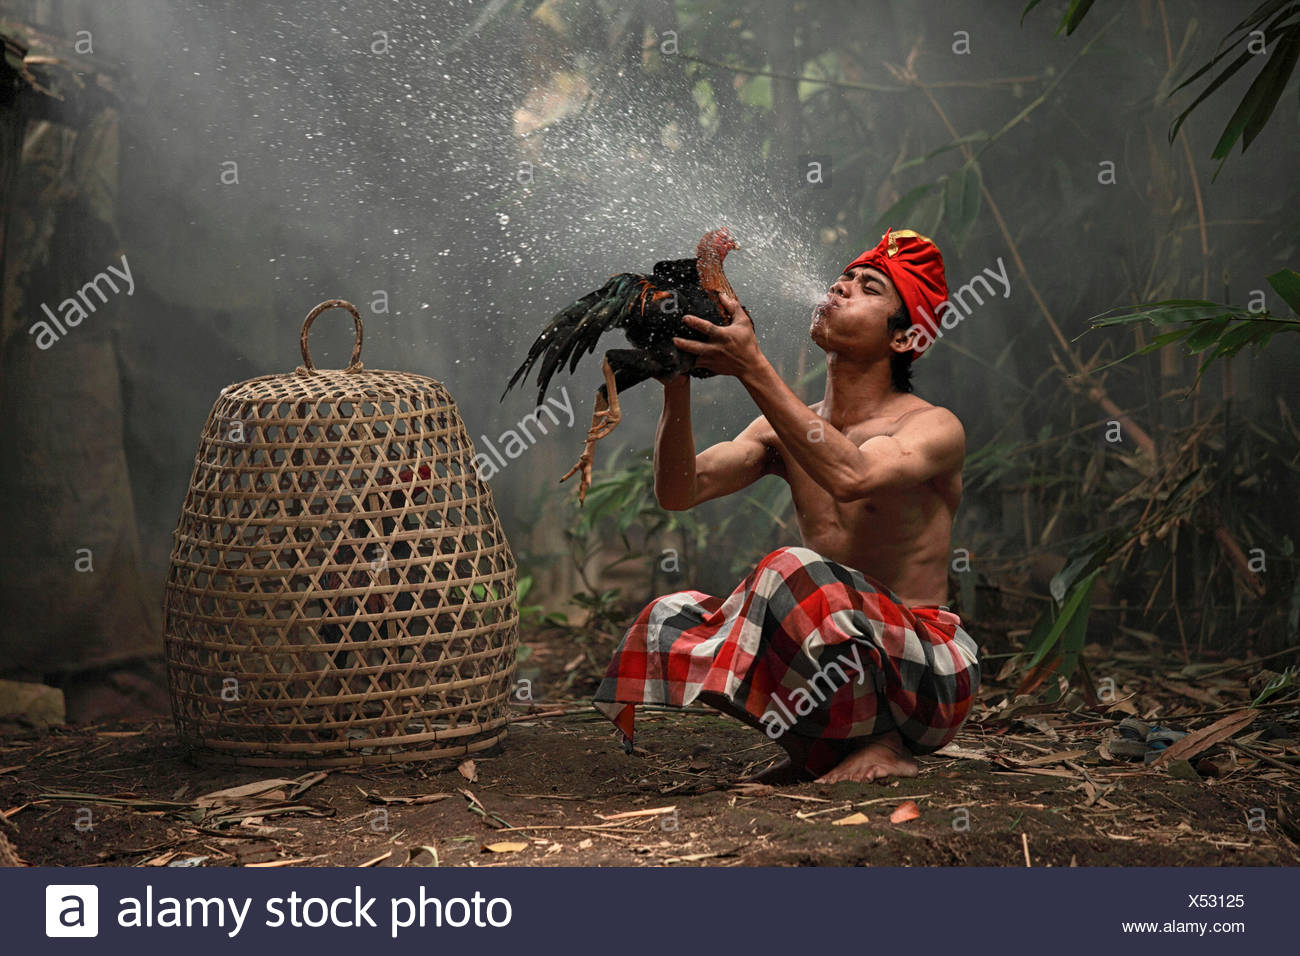 Indonesia, Jember, Man spraying chicken for chickens fight - Stock Image